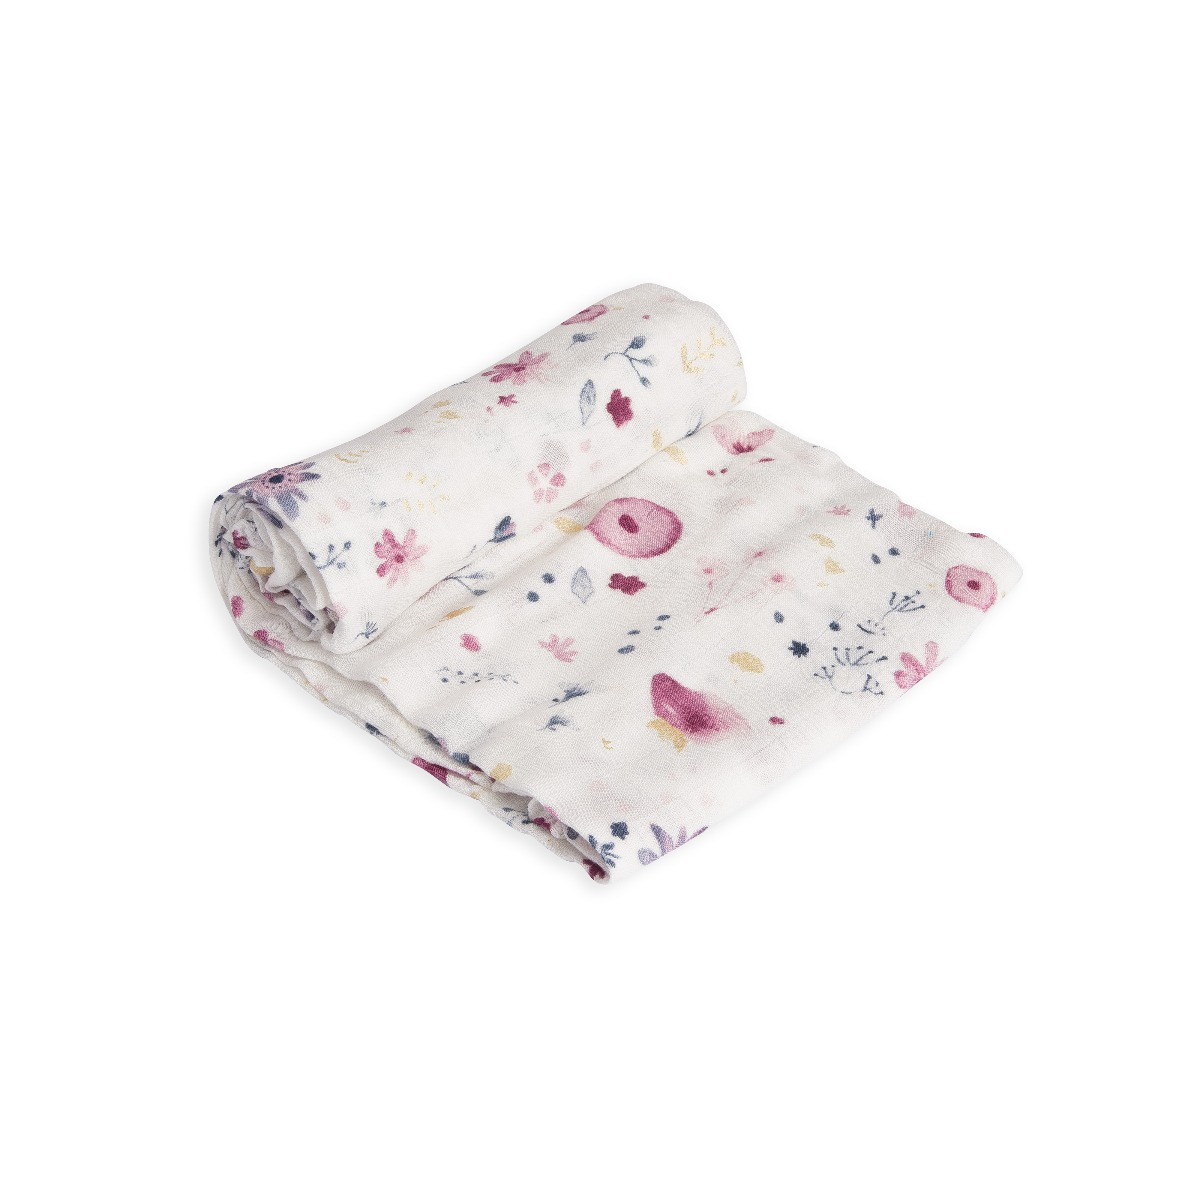 Llittle Unicorn Deluxe Swaddle Fairy Garden